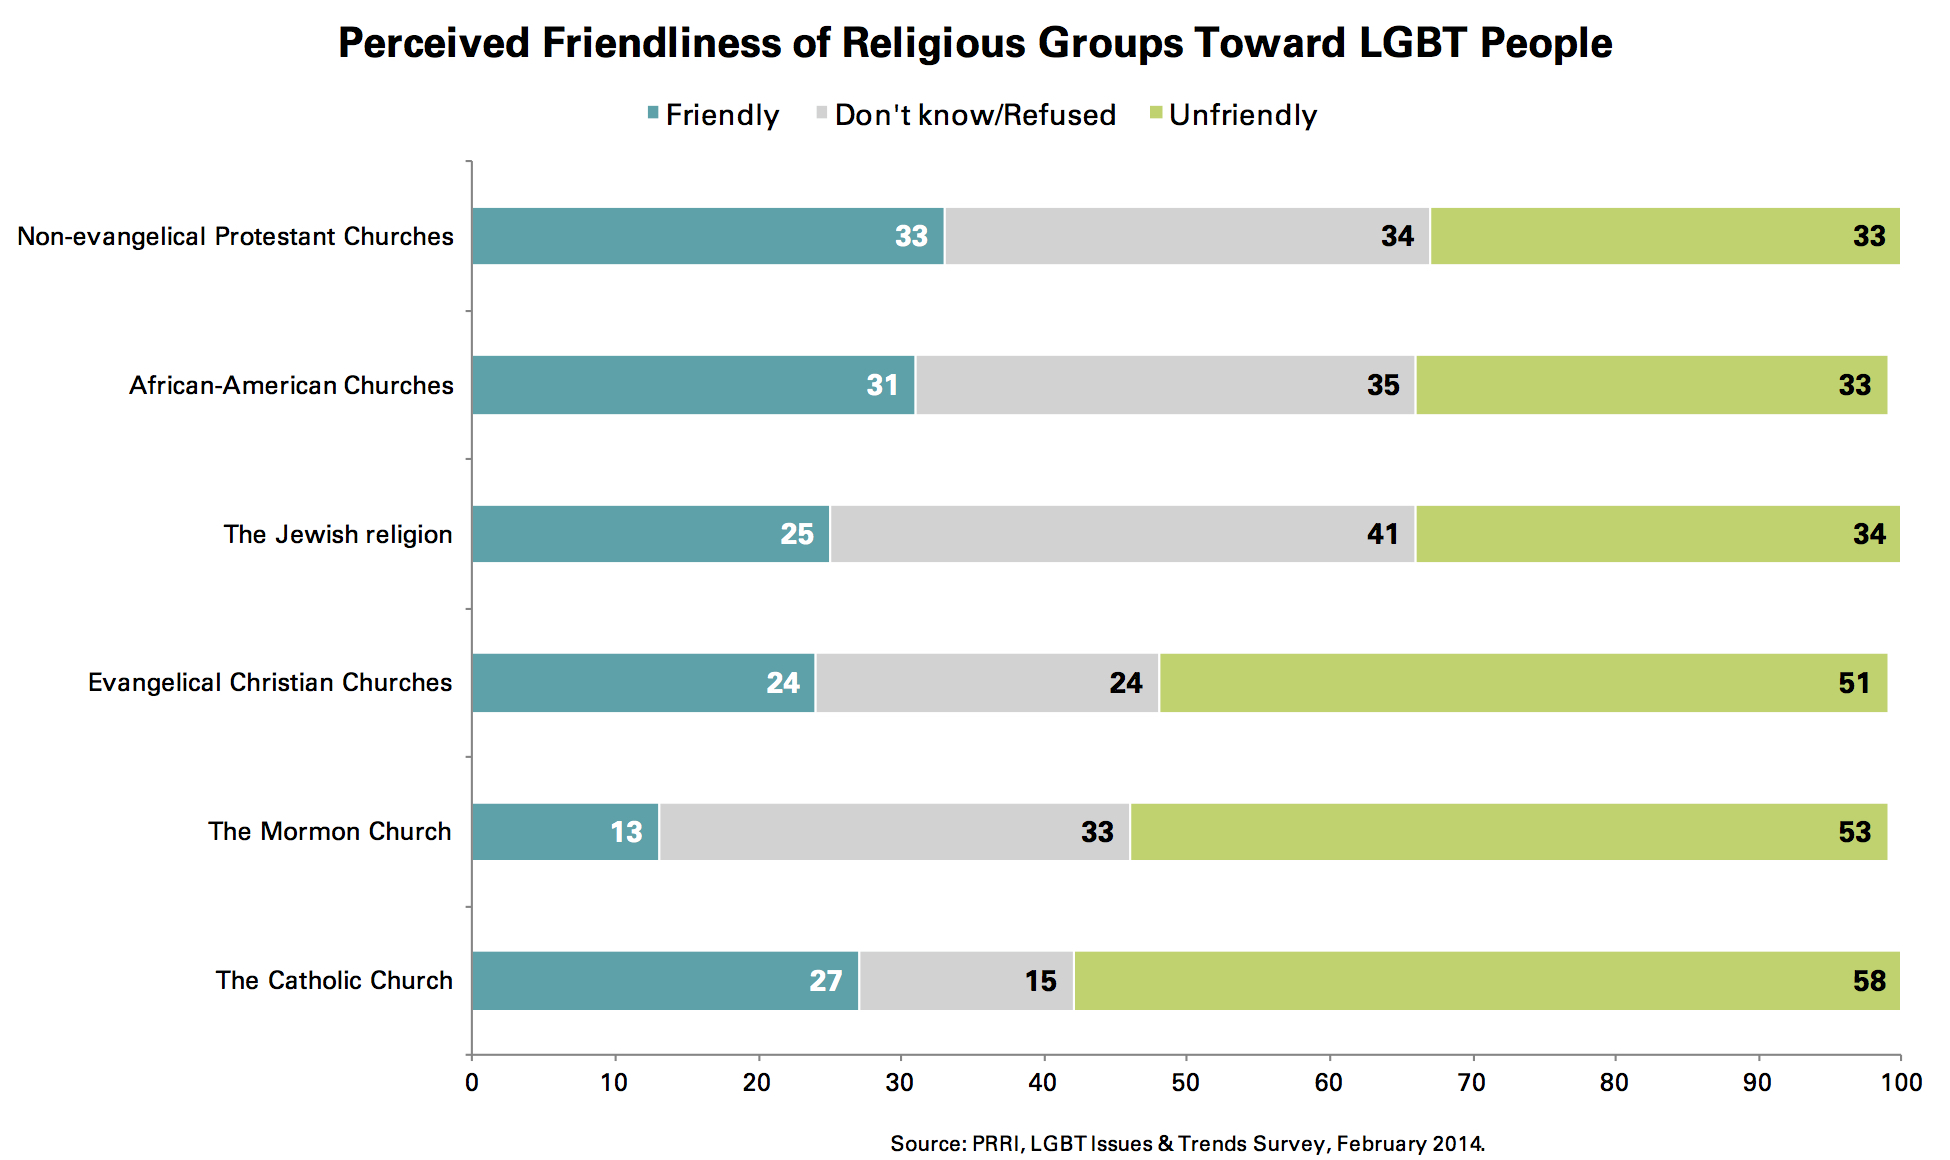 Negative religious views on homosexuality